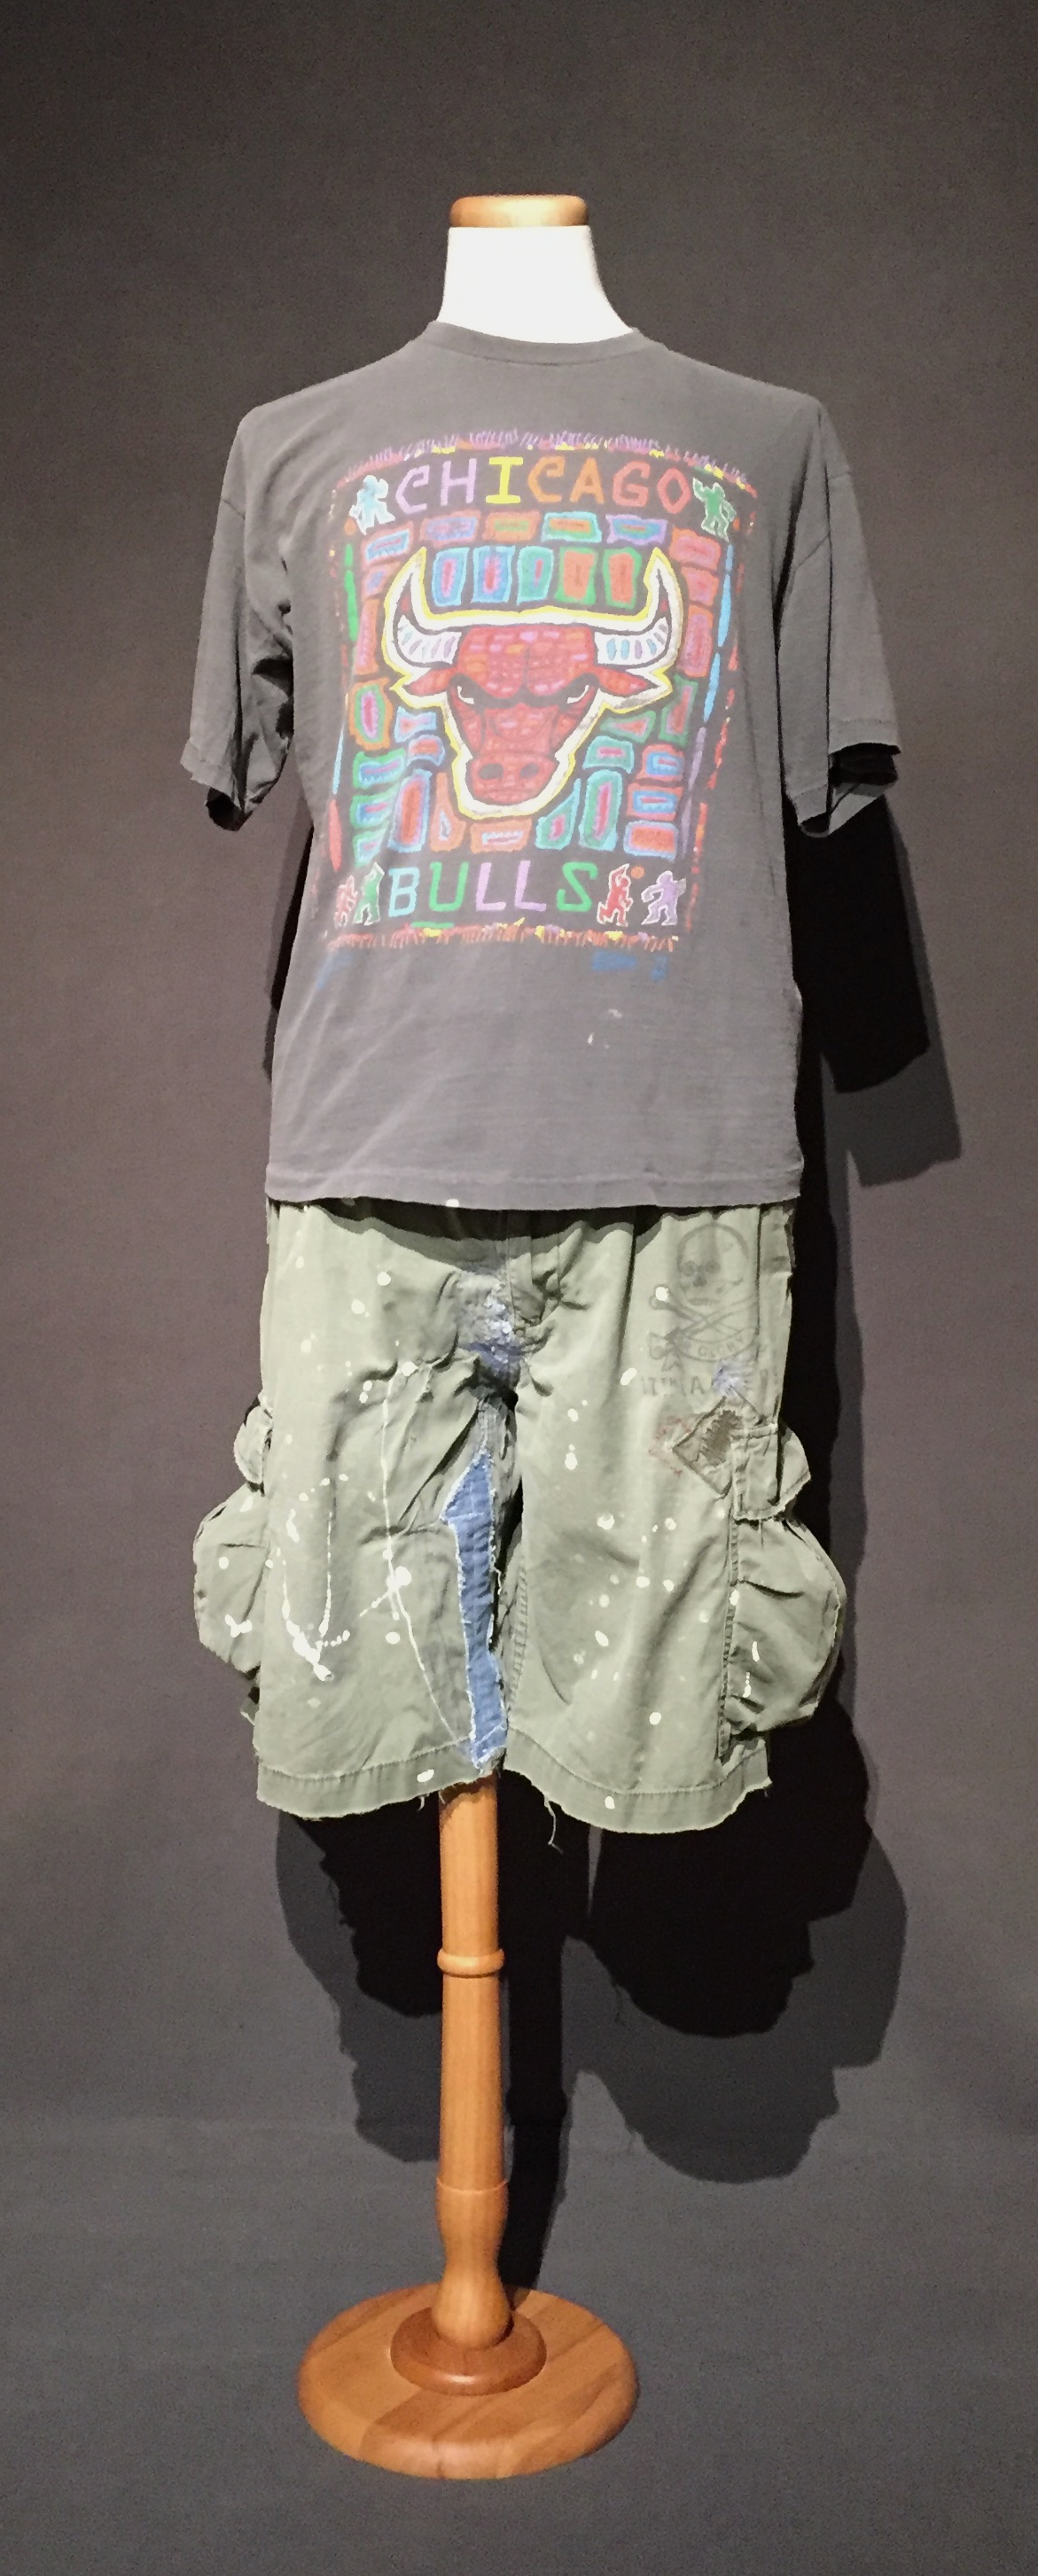 """- Chicago Bulls t-shirt, hand-repaired cargo shorts; Owner – Cyndi, lesbian, woman, 42, lives in Iowa; c. 2010sThis is a typical casual outfit worn by Cyndi and she related her feelings about how her sexual identity influences her style, """"I think in the past it did, because when I graduated from college I had really long hair, I was like, kind of a hippie, and then eventually, when I came out, it just every year, kept getting shorter and shorter and shorter and then for a while I did go short and spikey and my family was like, 'who's that guy?' I'm more comfortable with my hair short now. If I get my hair cut too short and [gasps] 'oh no, I look like a lesbian now and then I'm like wait, uh, maybe I look like a lesbian all the time?' So, my clothing, is typically pretty casual and then if I have dress clothes, it's pants, I never wear skirts. I don't own a skirt anymore. I don't own a dress, no pantyhose."""" – personal interview with Cyndi, November 21, 2017"""